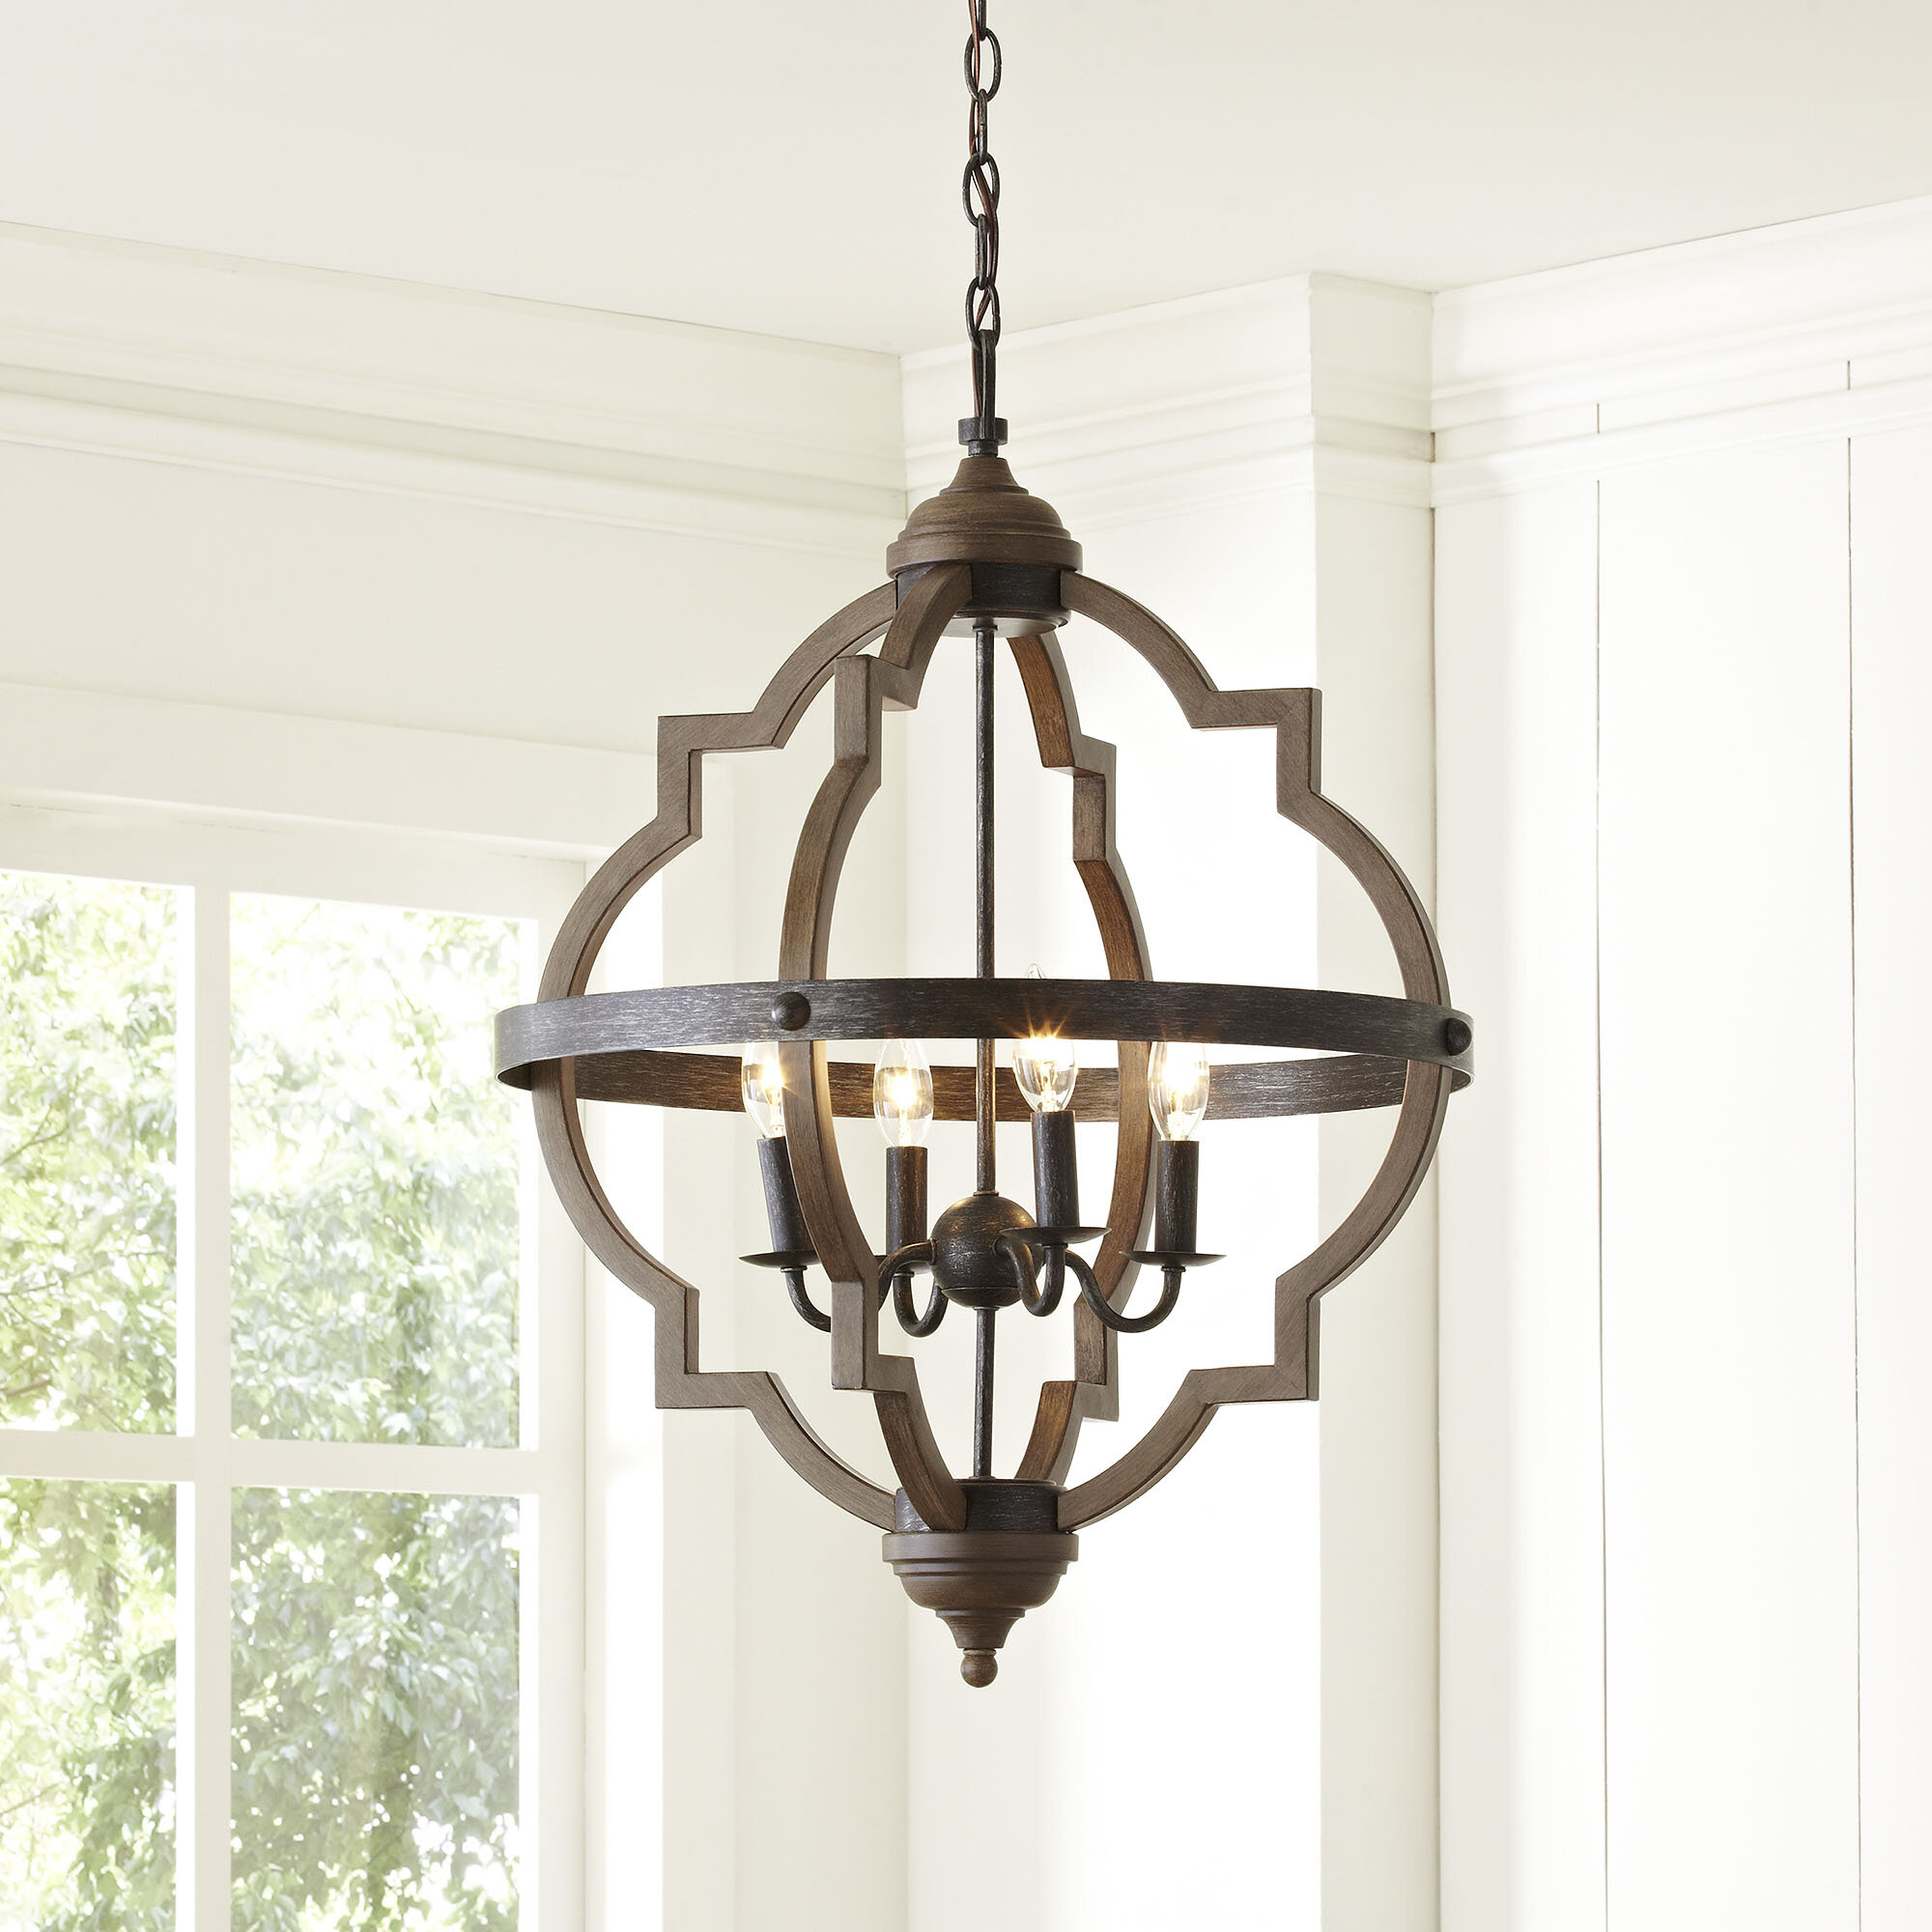 design tier furniture high images chandelier three color chandeliers cleo and end ab view luxury